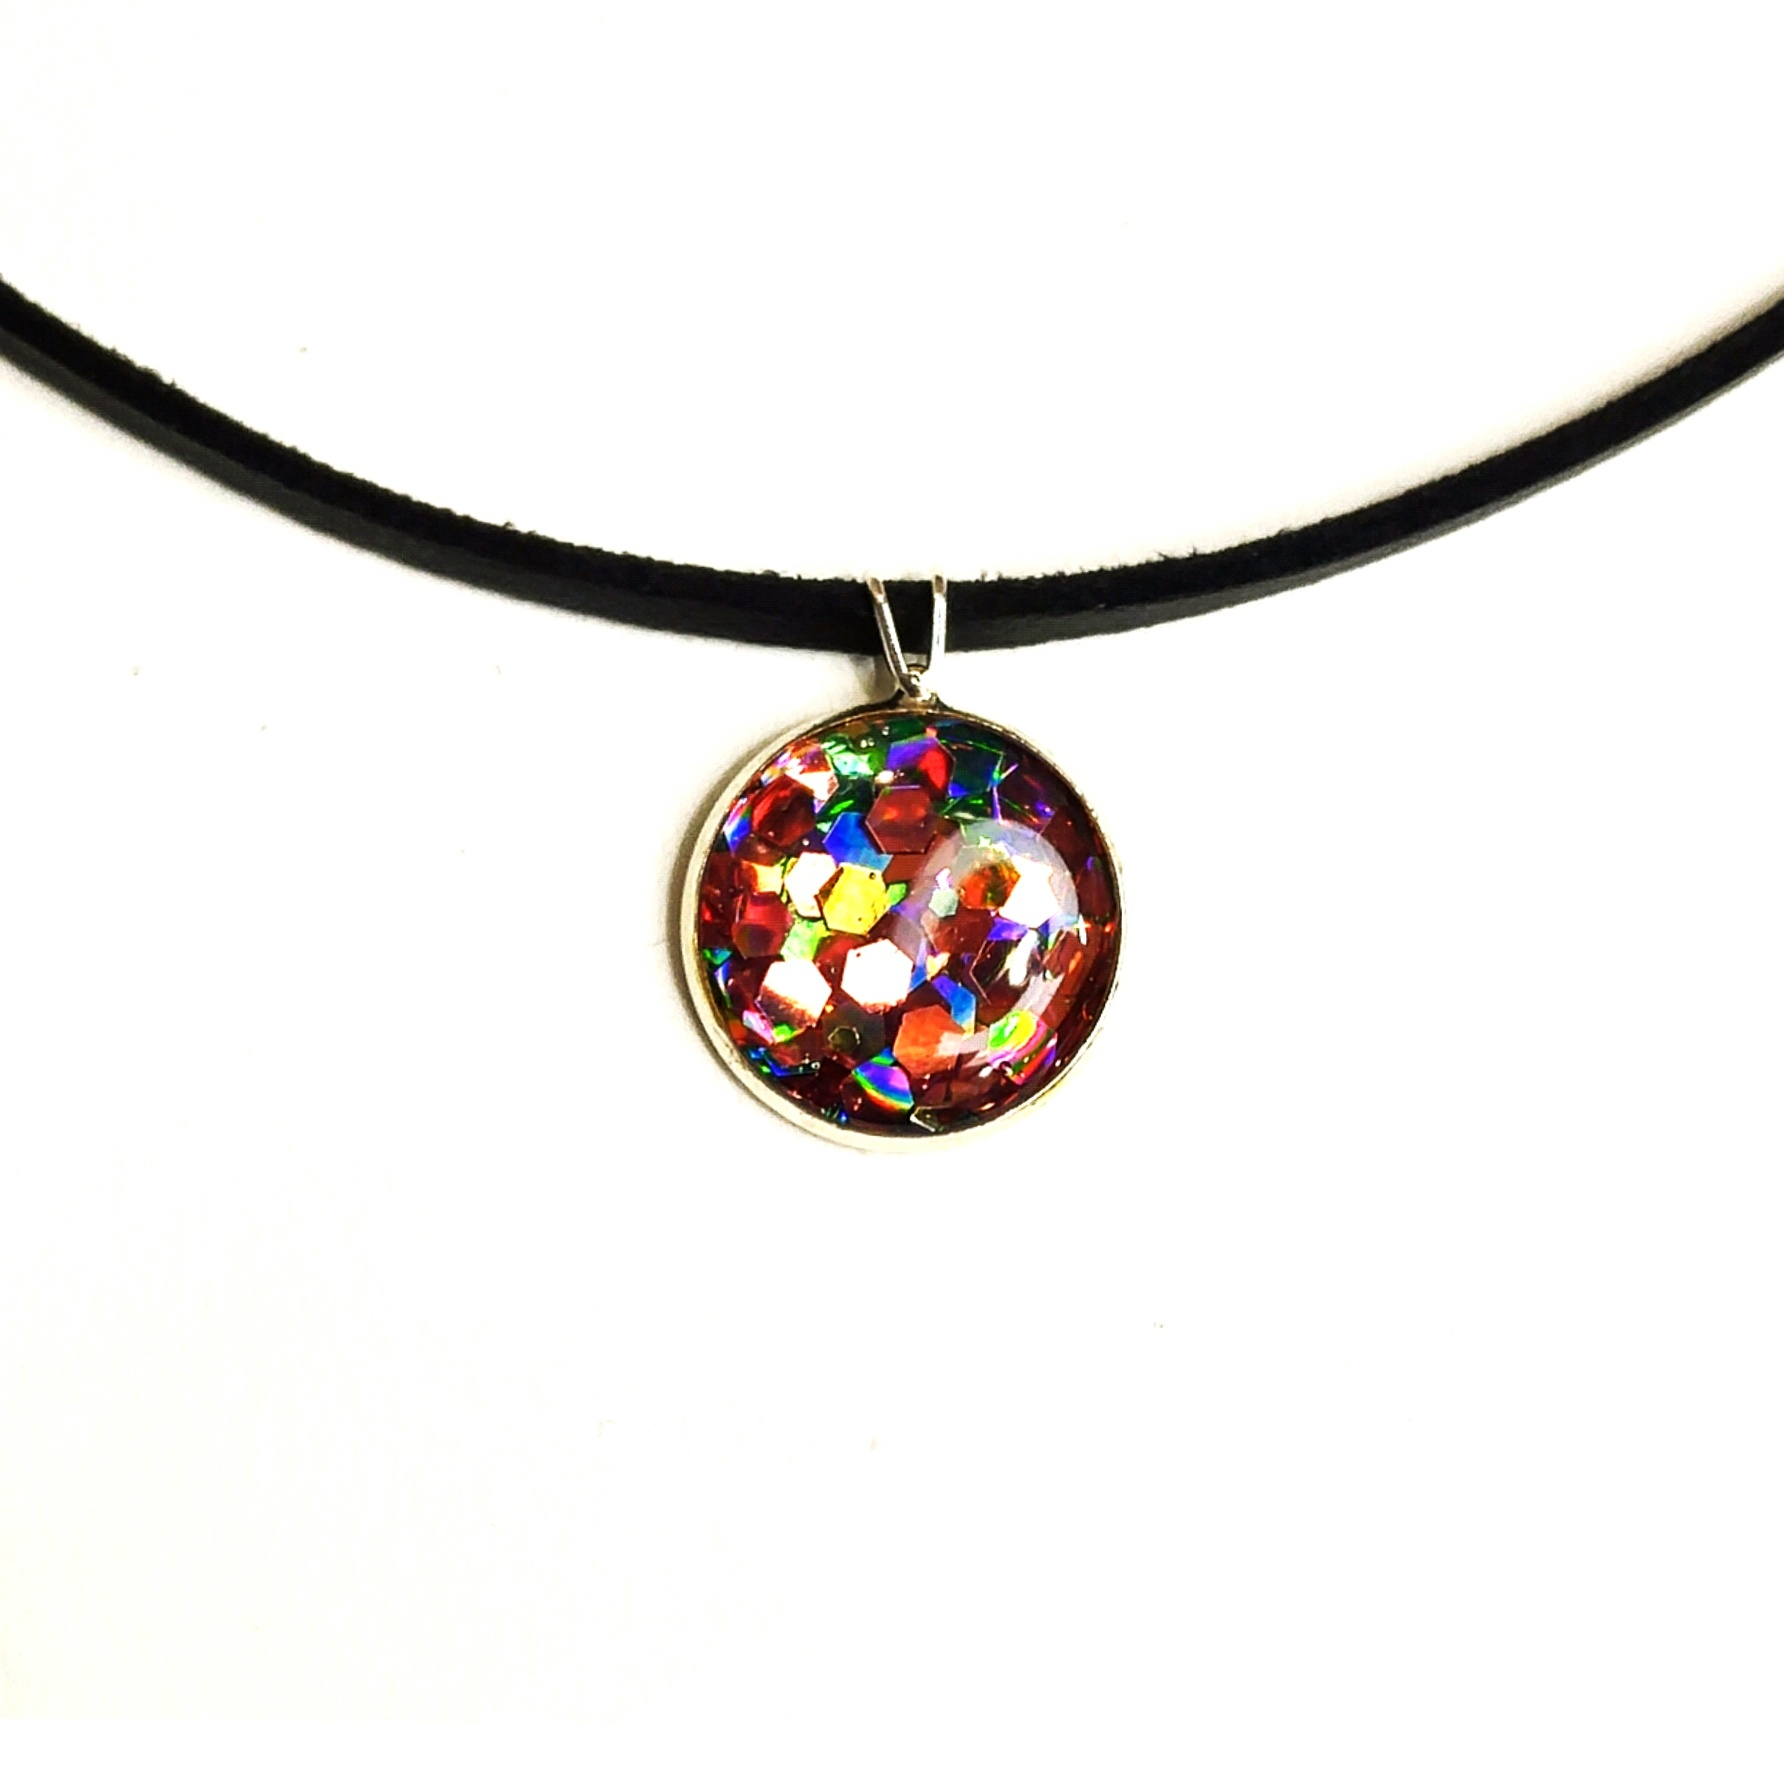 1/2 pendant containing rainbow inducing layers of hexagonal sparkles, set in resin is fun for all involved.